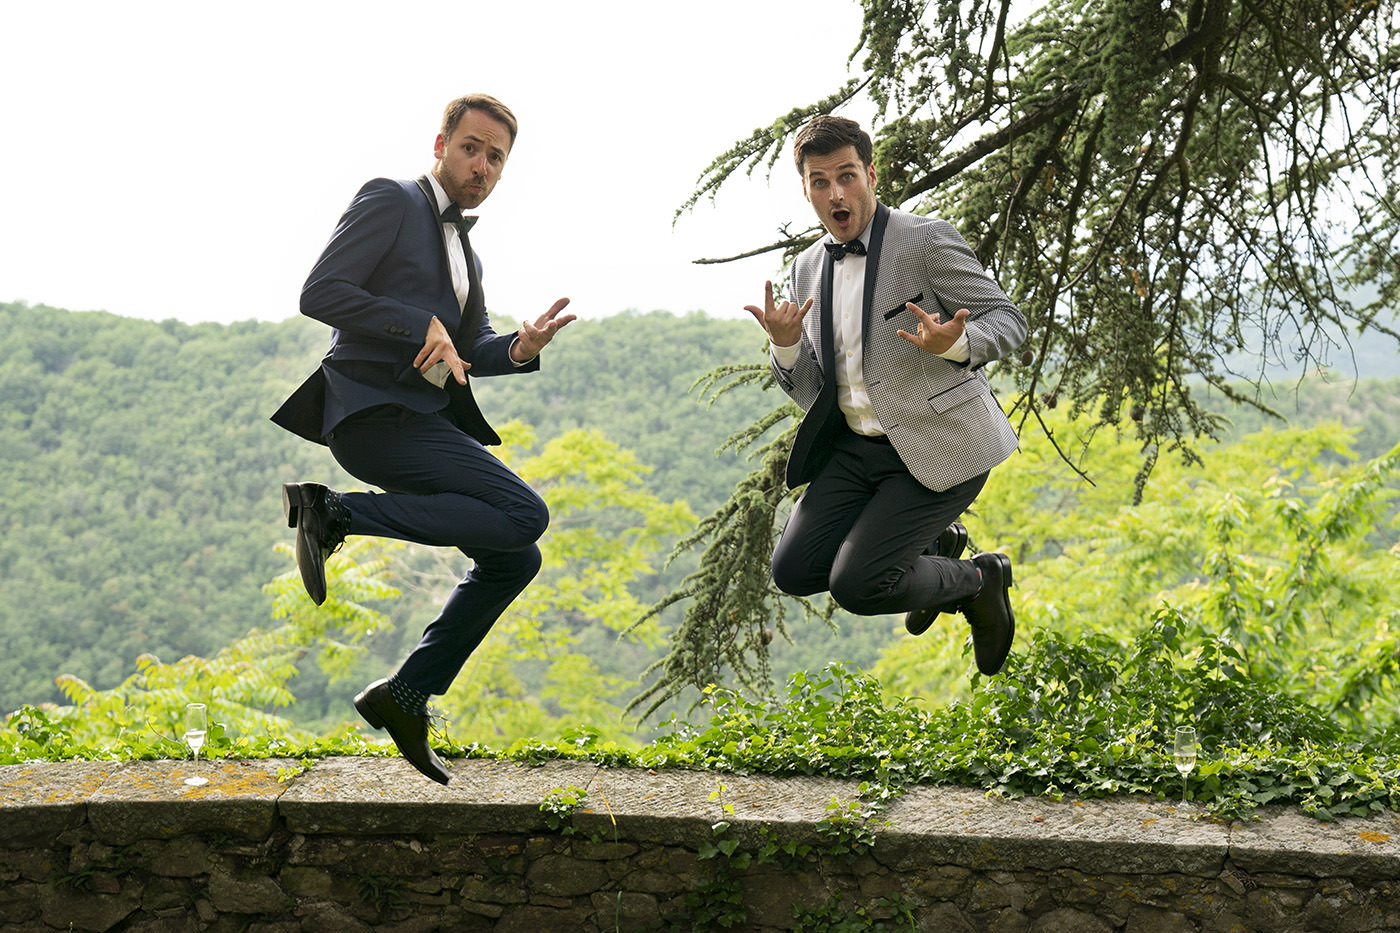 Same-Sex Wedding Photographer Florence: Timur & Guillaume. Couple jump together!